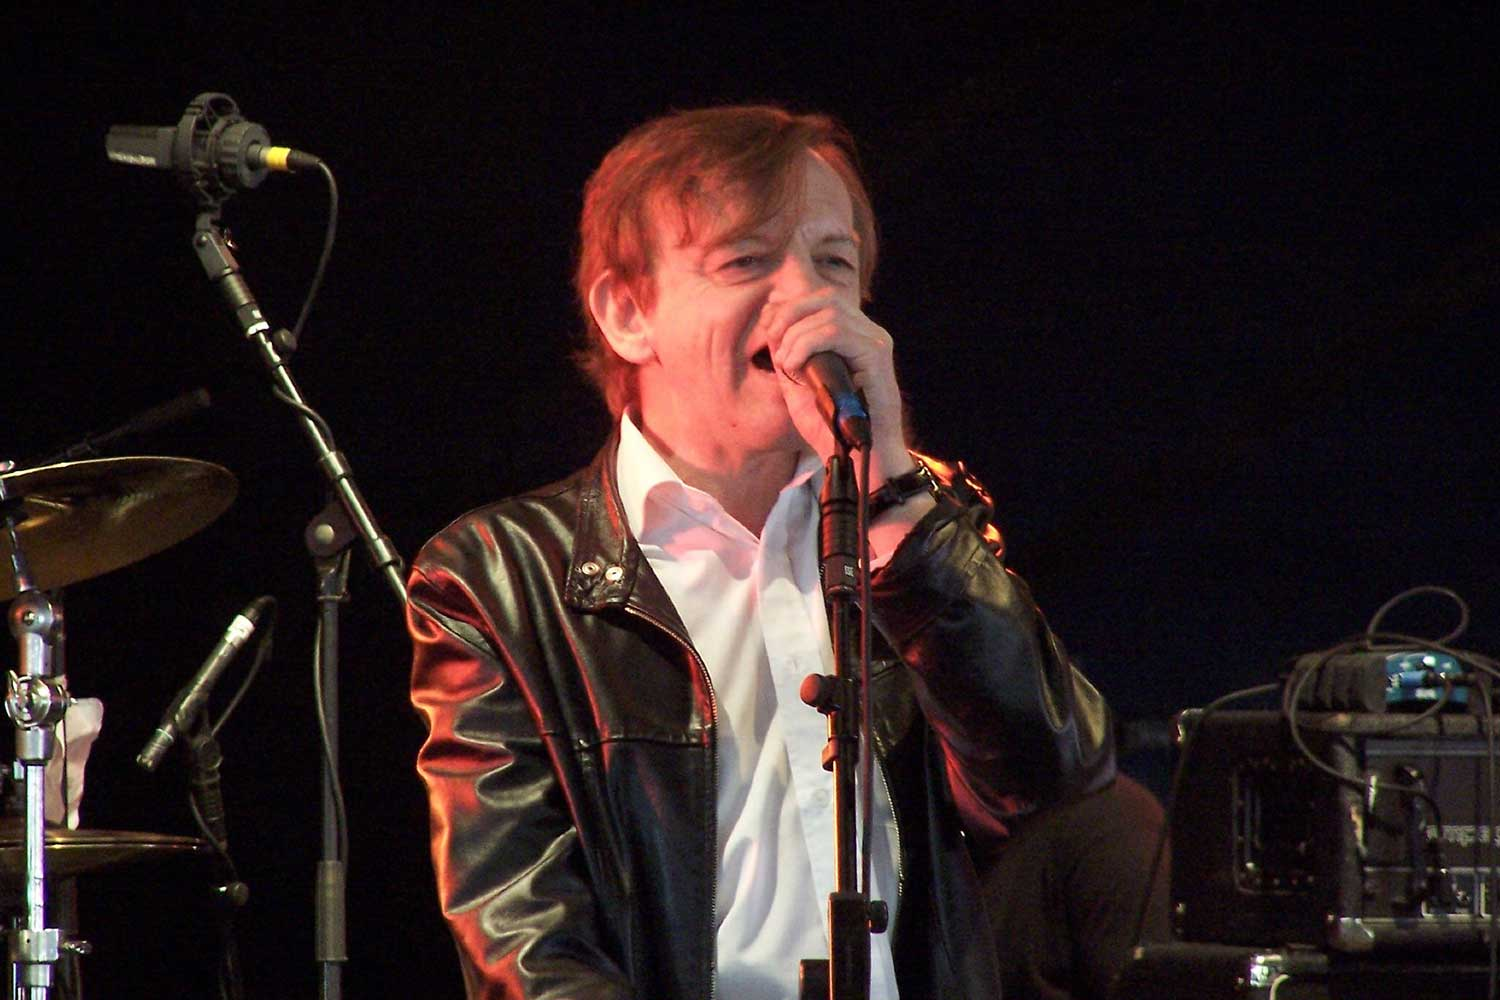 Mark E Smith pisses himself on stage – The news article was an SEO success and became known as MESPA in the office due to its continued status as the most read news article on the website